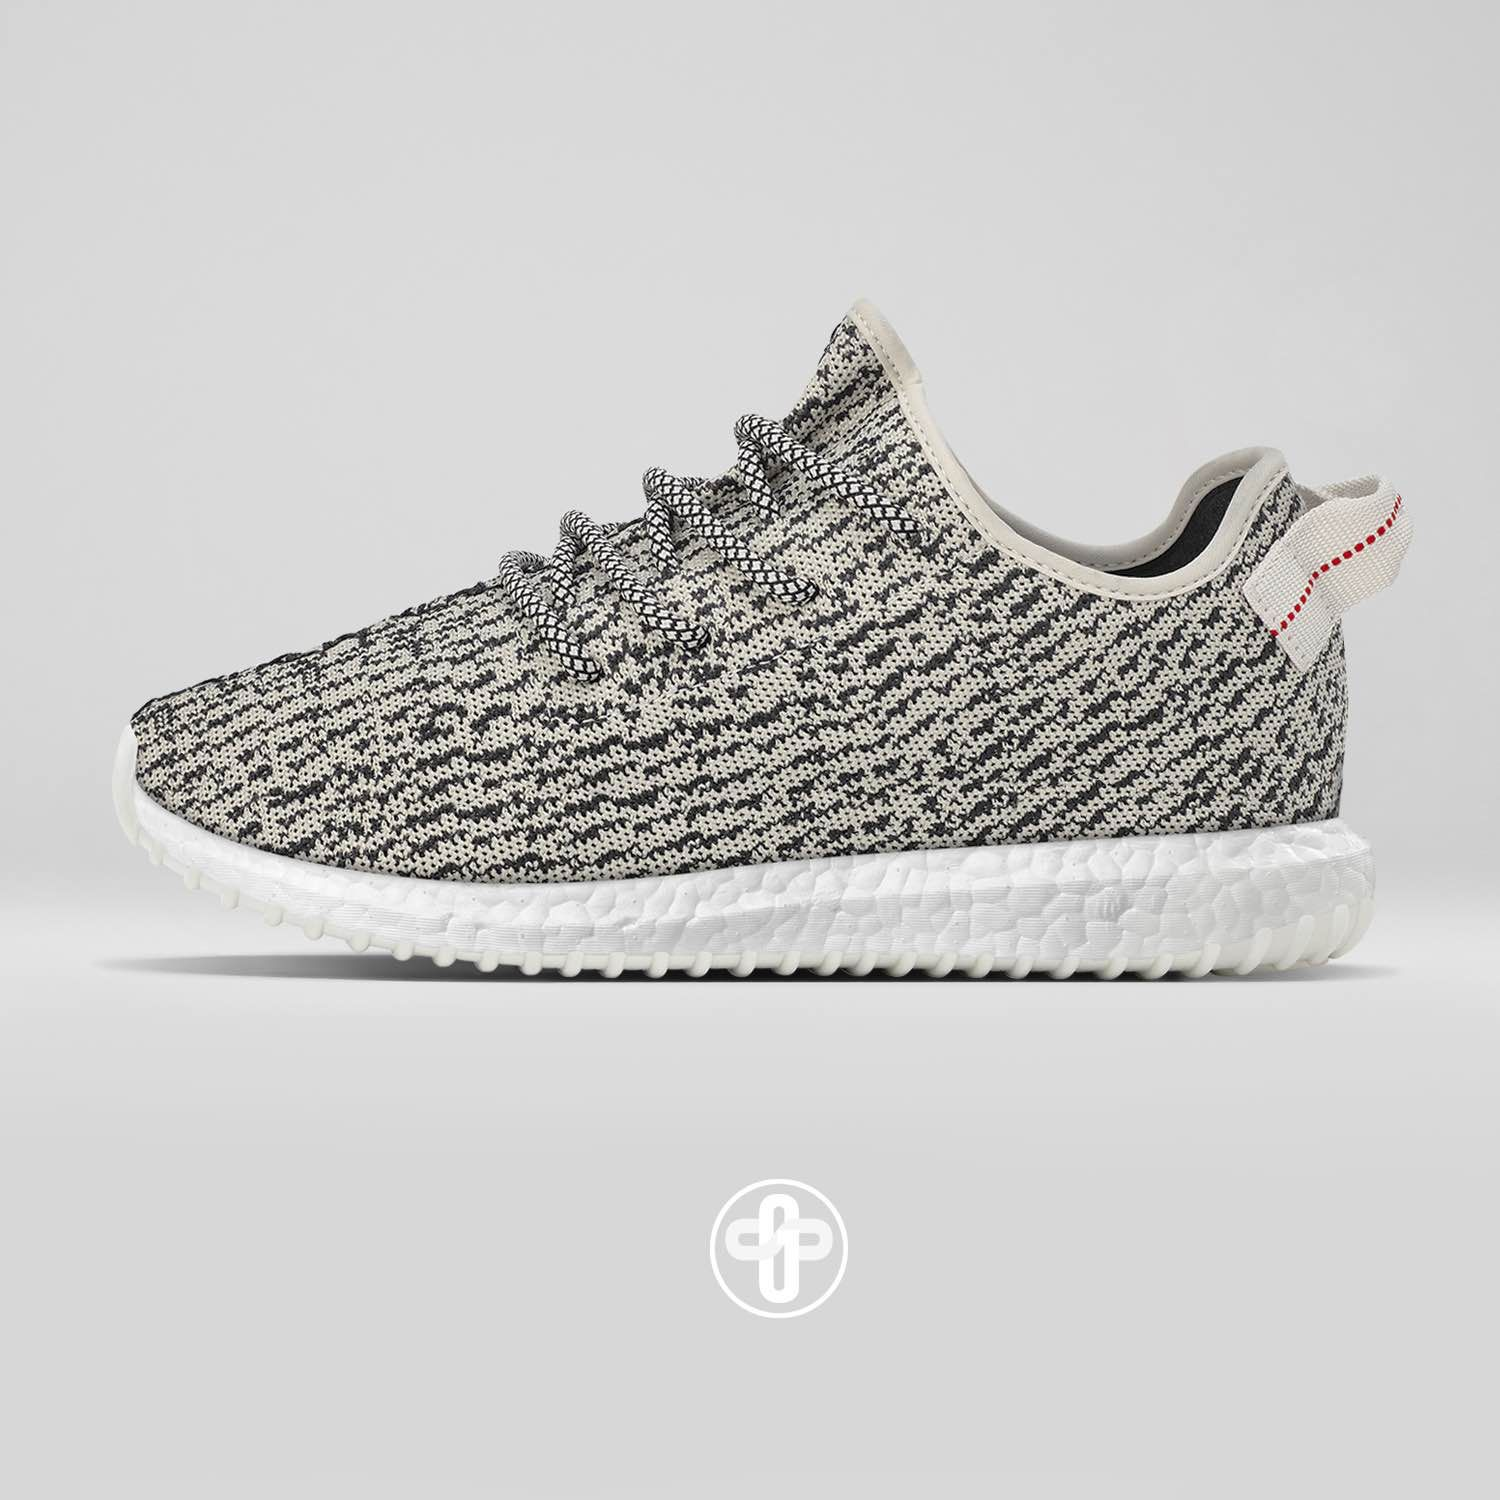 172fd94e5 Adidas Yeezy Extra Boost 350 Turtle Dove. Find this Pin and ...